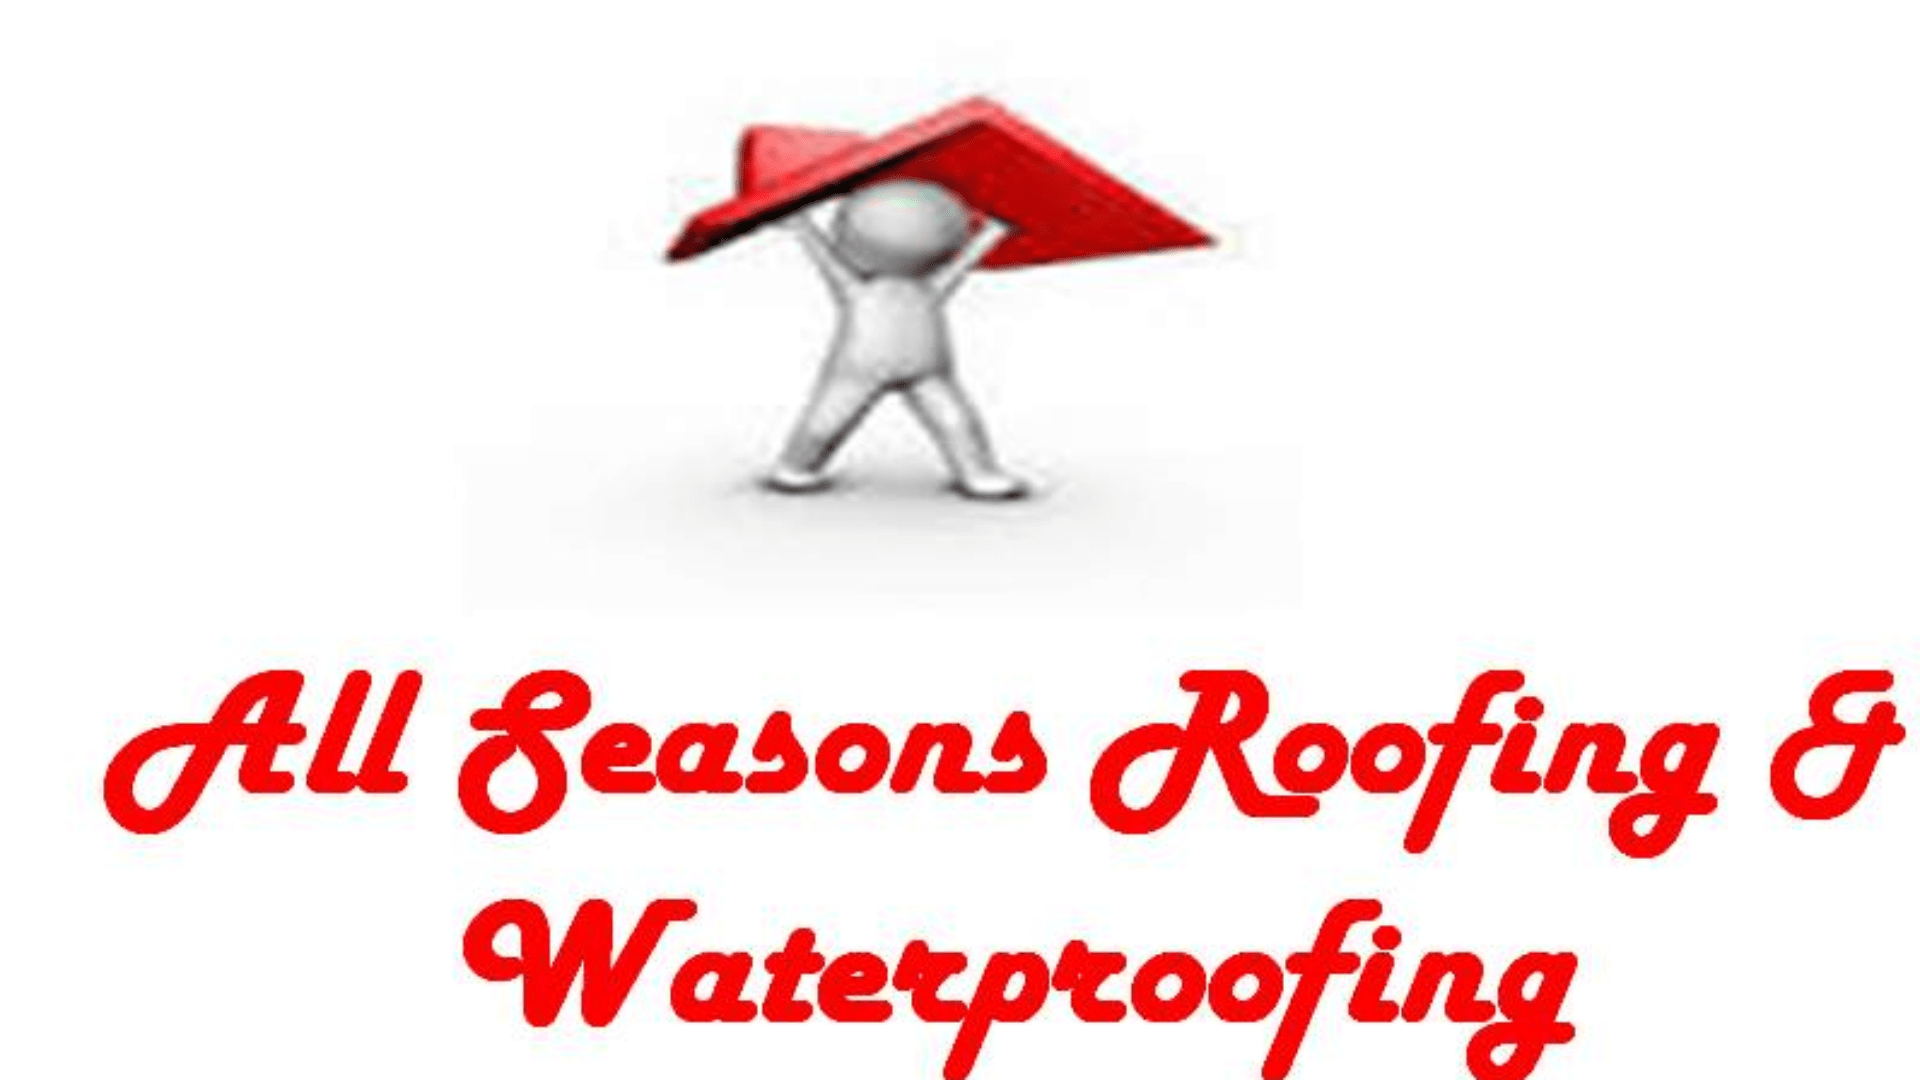 All Seasons Roofing & Waterproofing